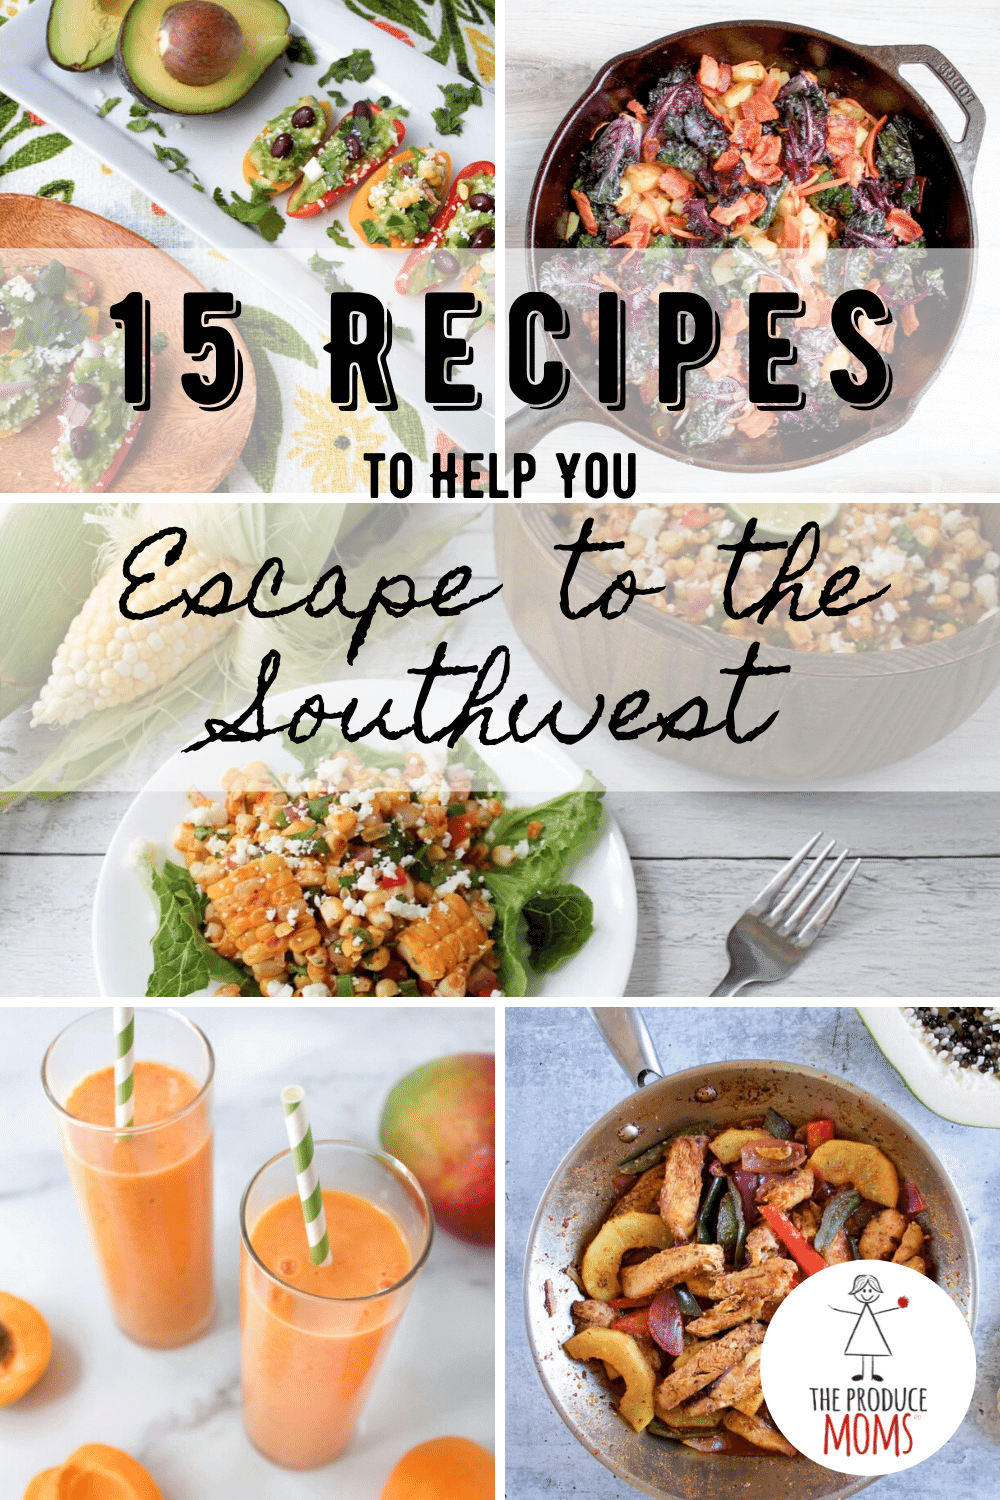 Southwestern Recipes